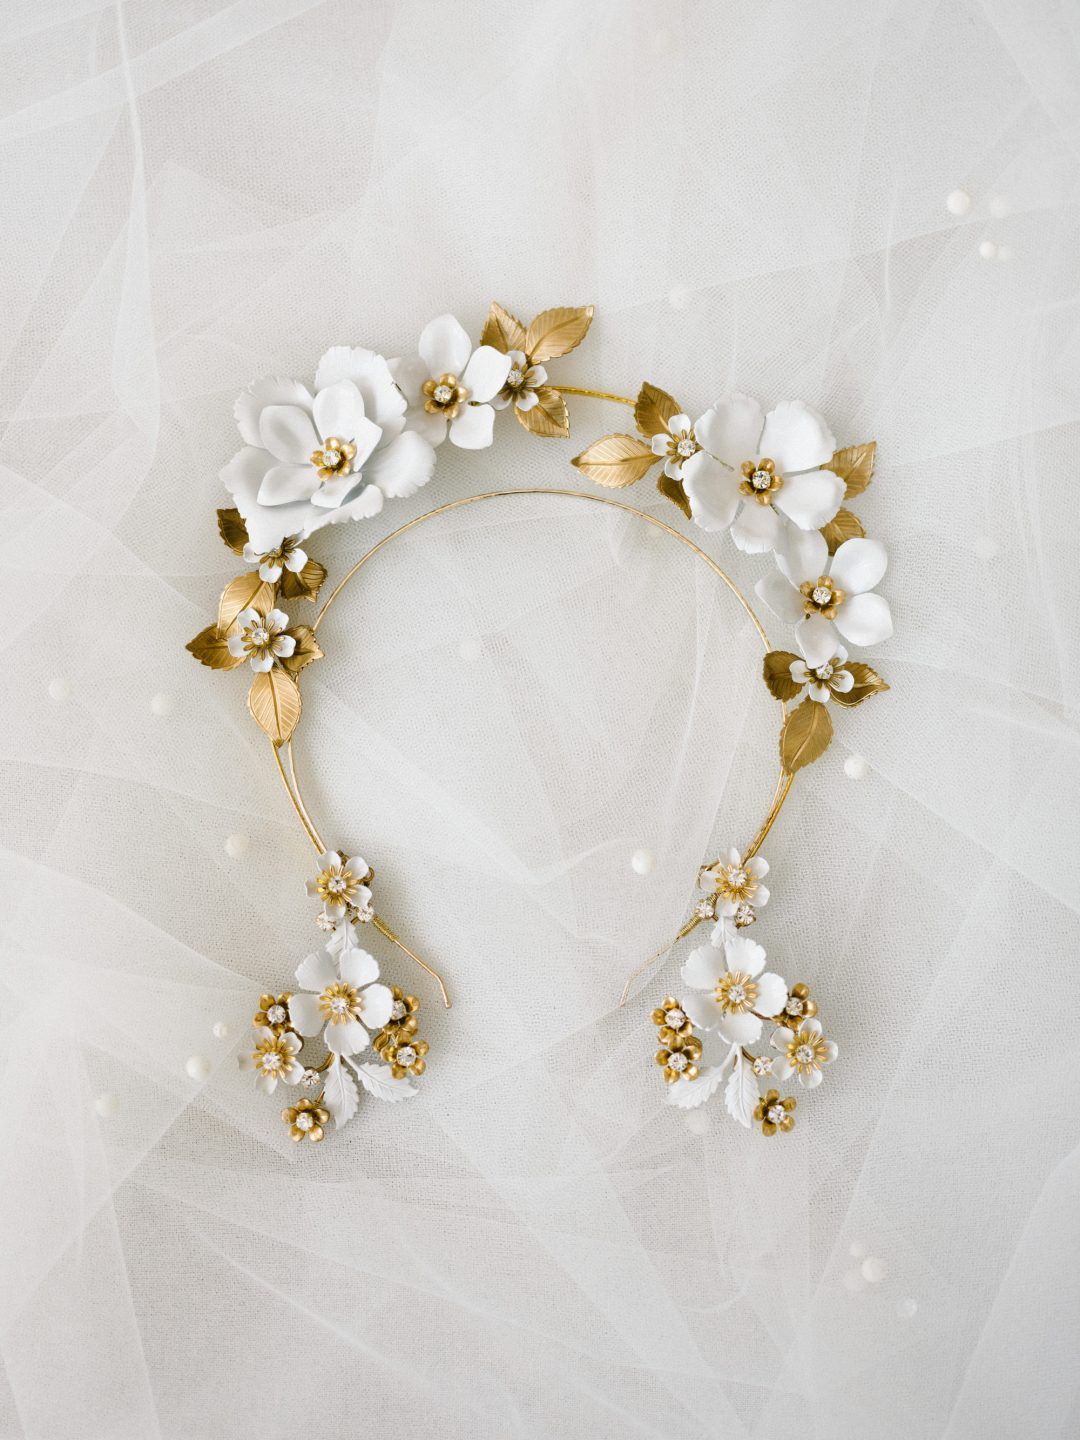 Style 903 - Halo Floral Bridal Headband - by SIBO Designs Couture www.sibodesigns.com